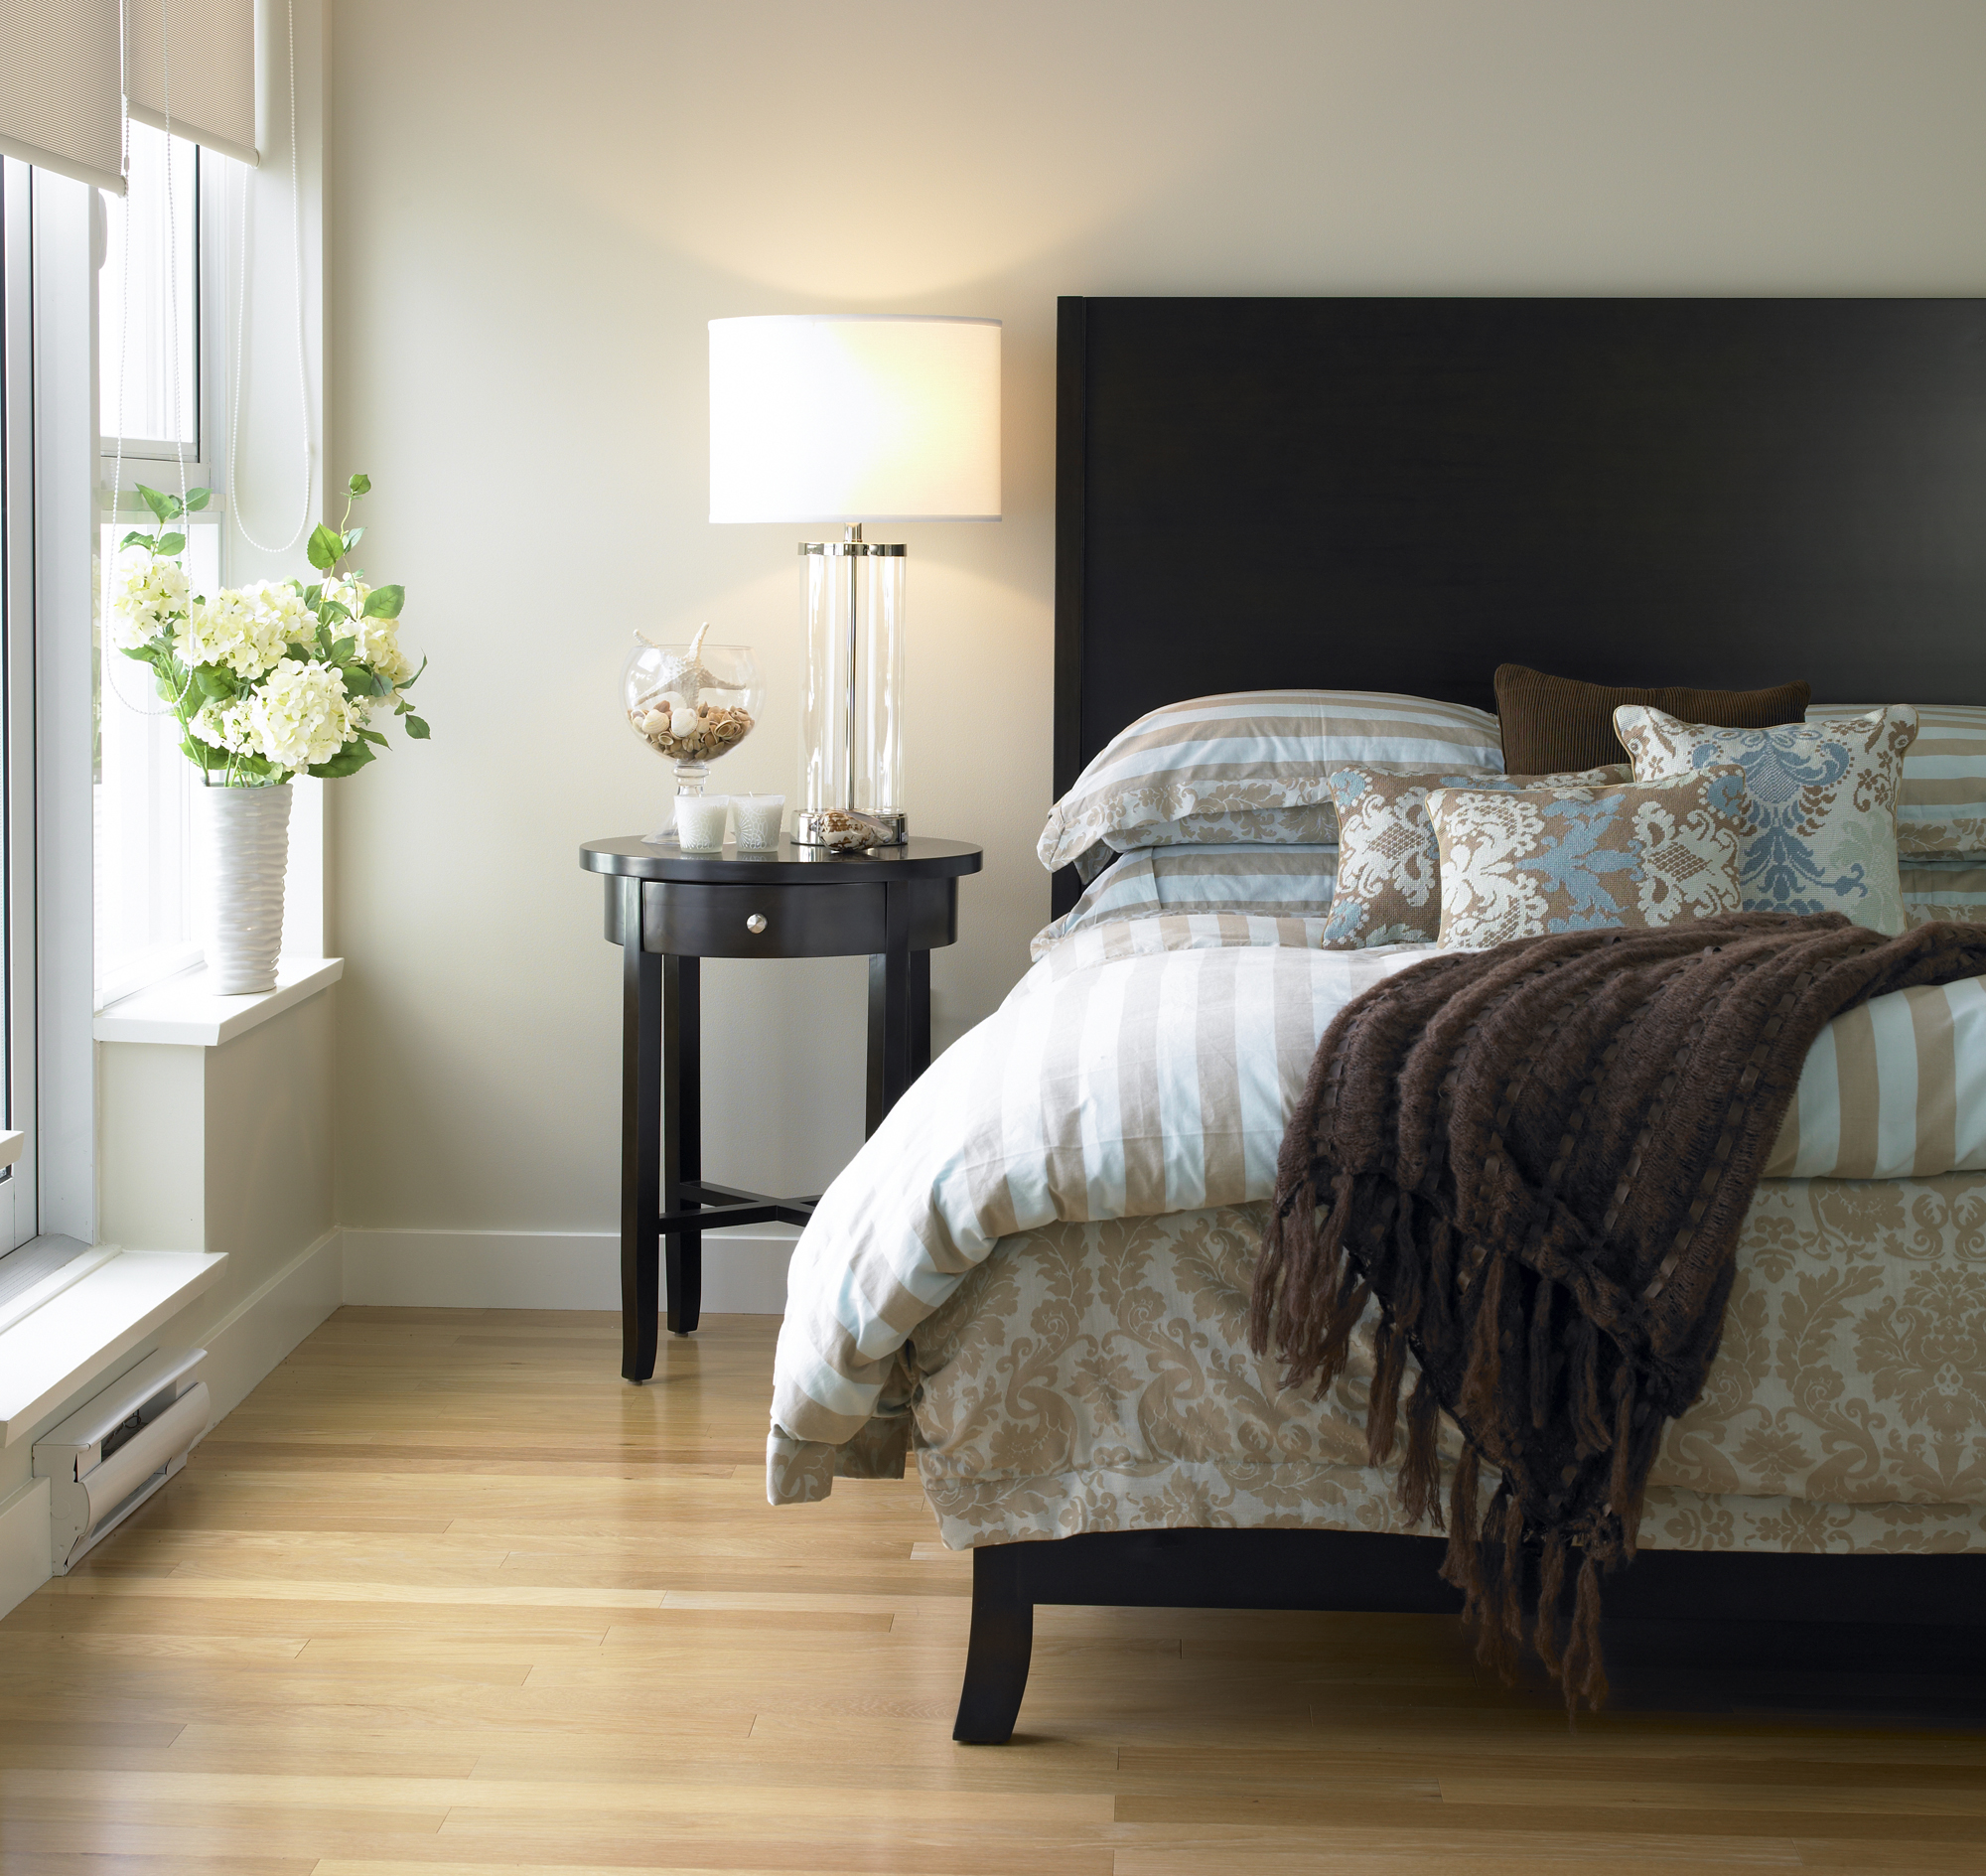 Bedroom with brown and blue bedding, bedside table, flowers